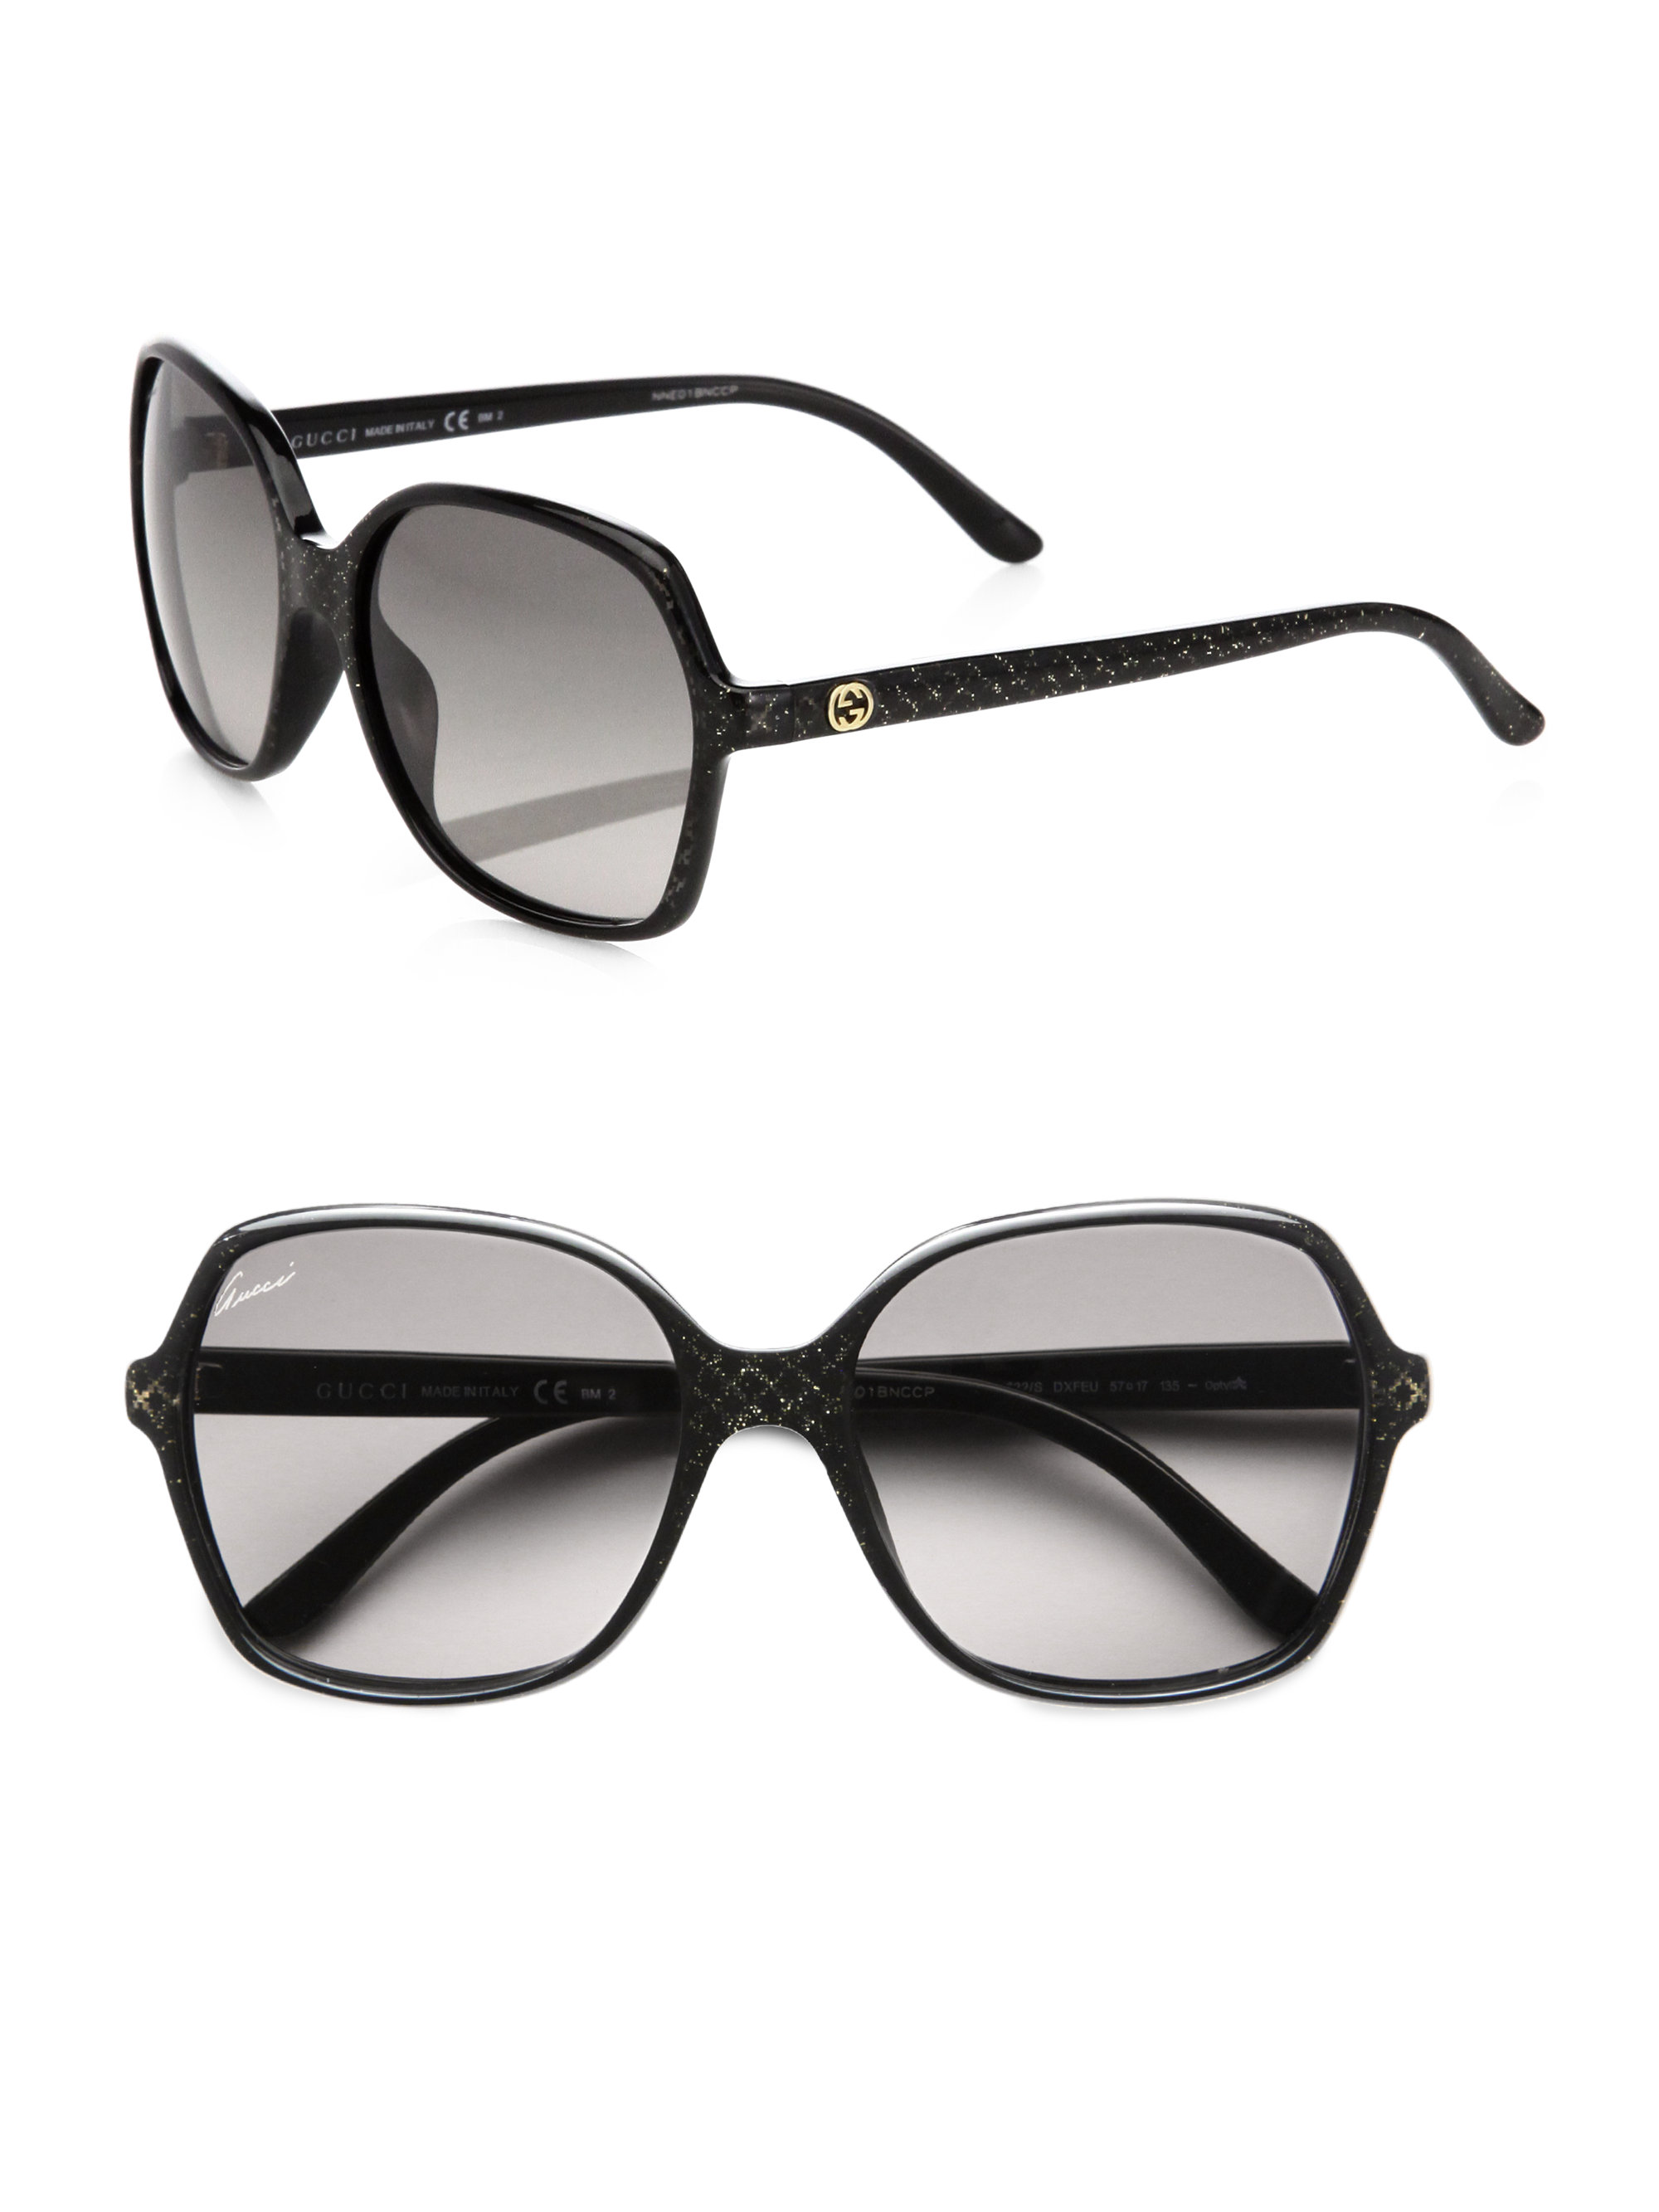 8b06f94832 Gucci Oversized Square-frame Sunglasses